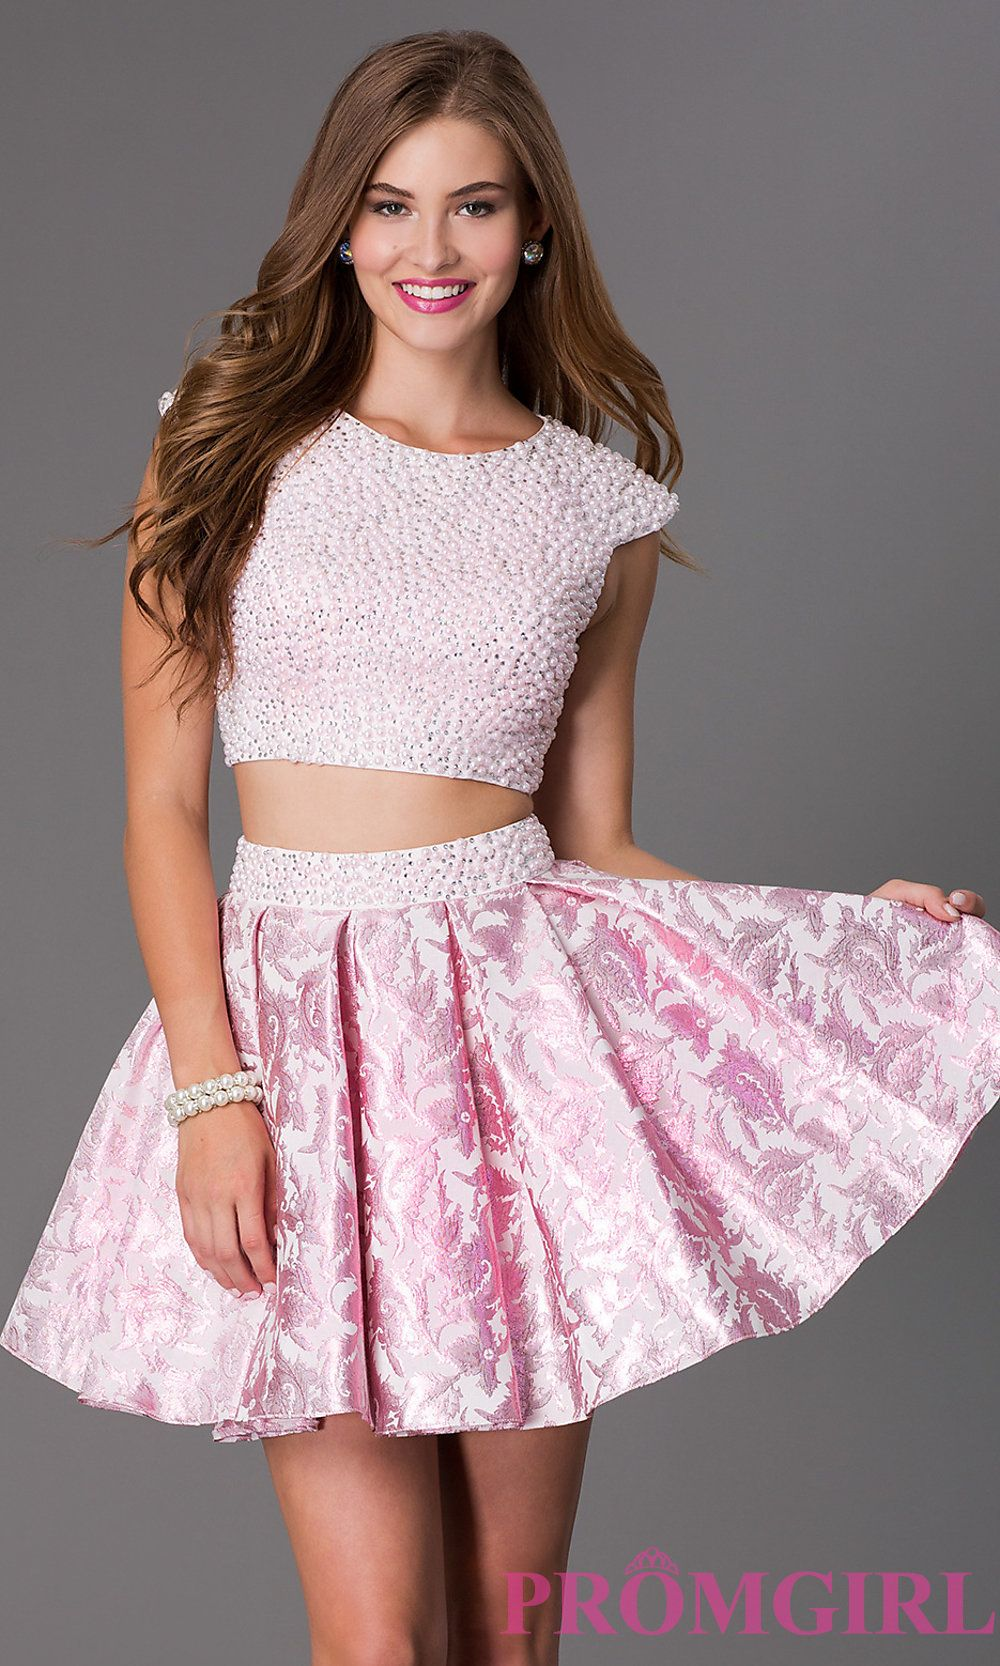 Elegant dresses with sleeves for teens champagne sleeved semi formal - Pearls